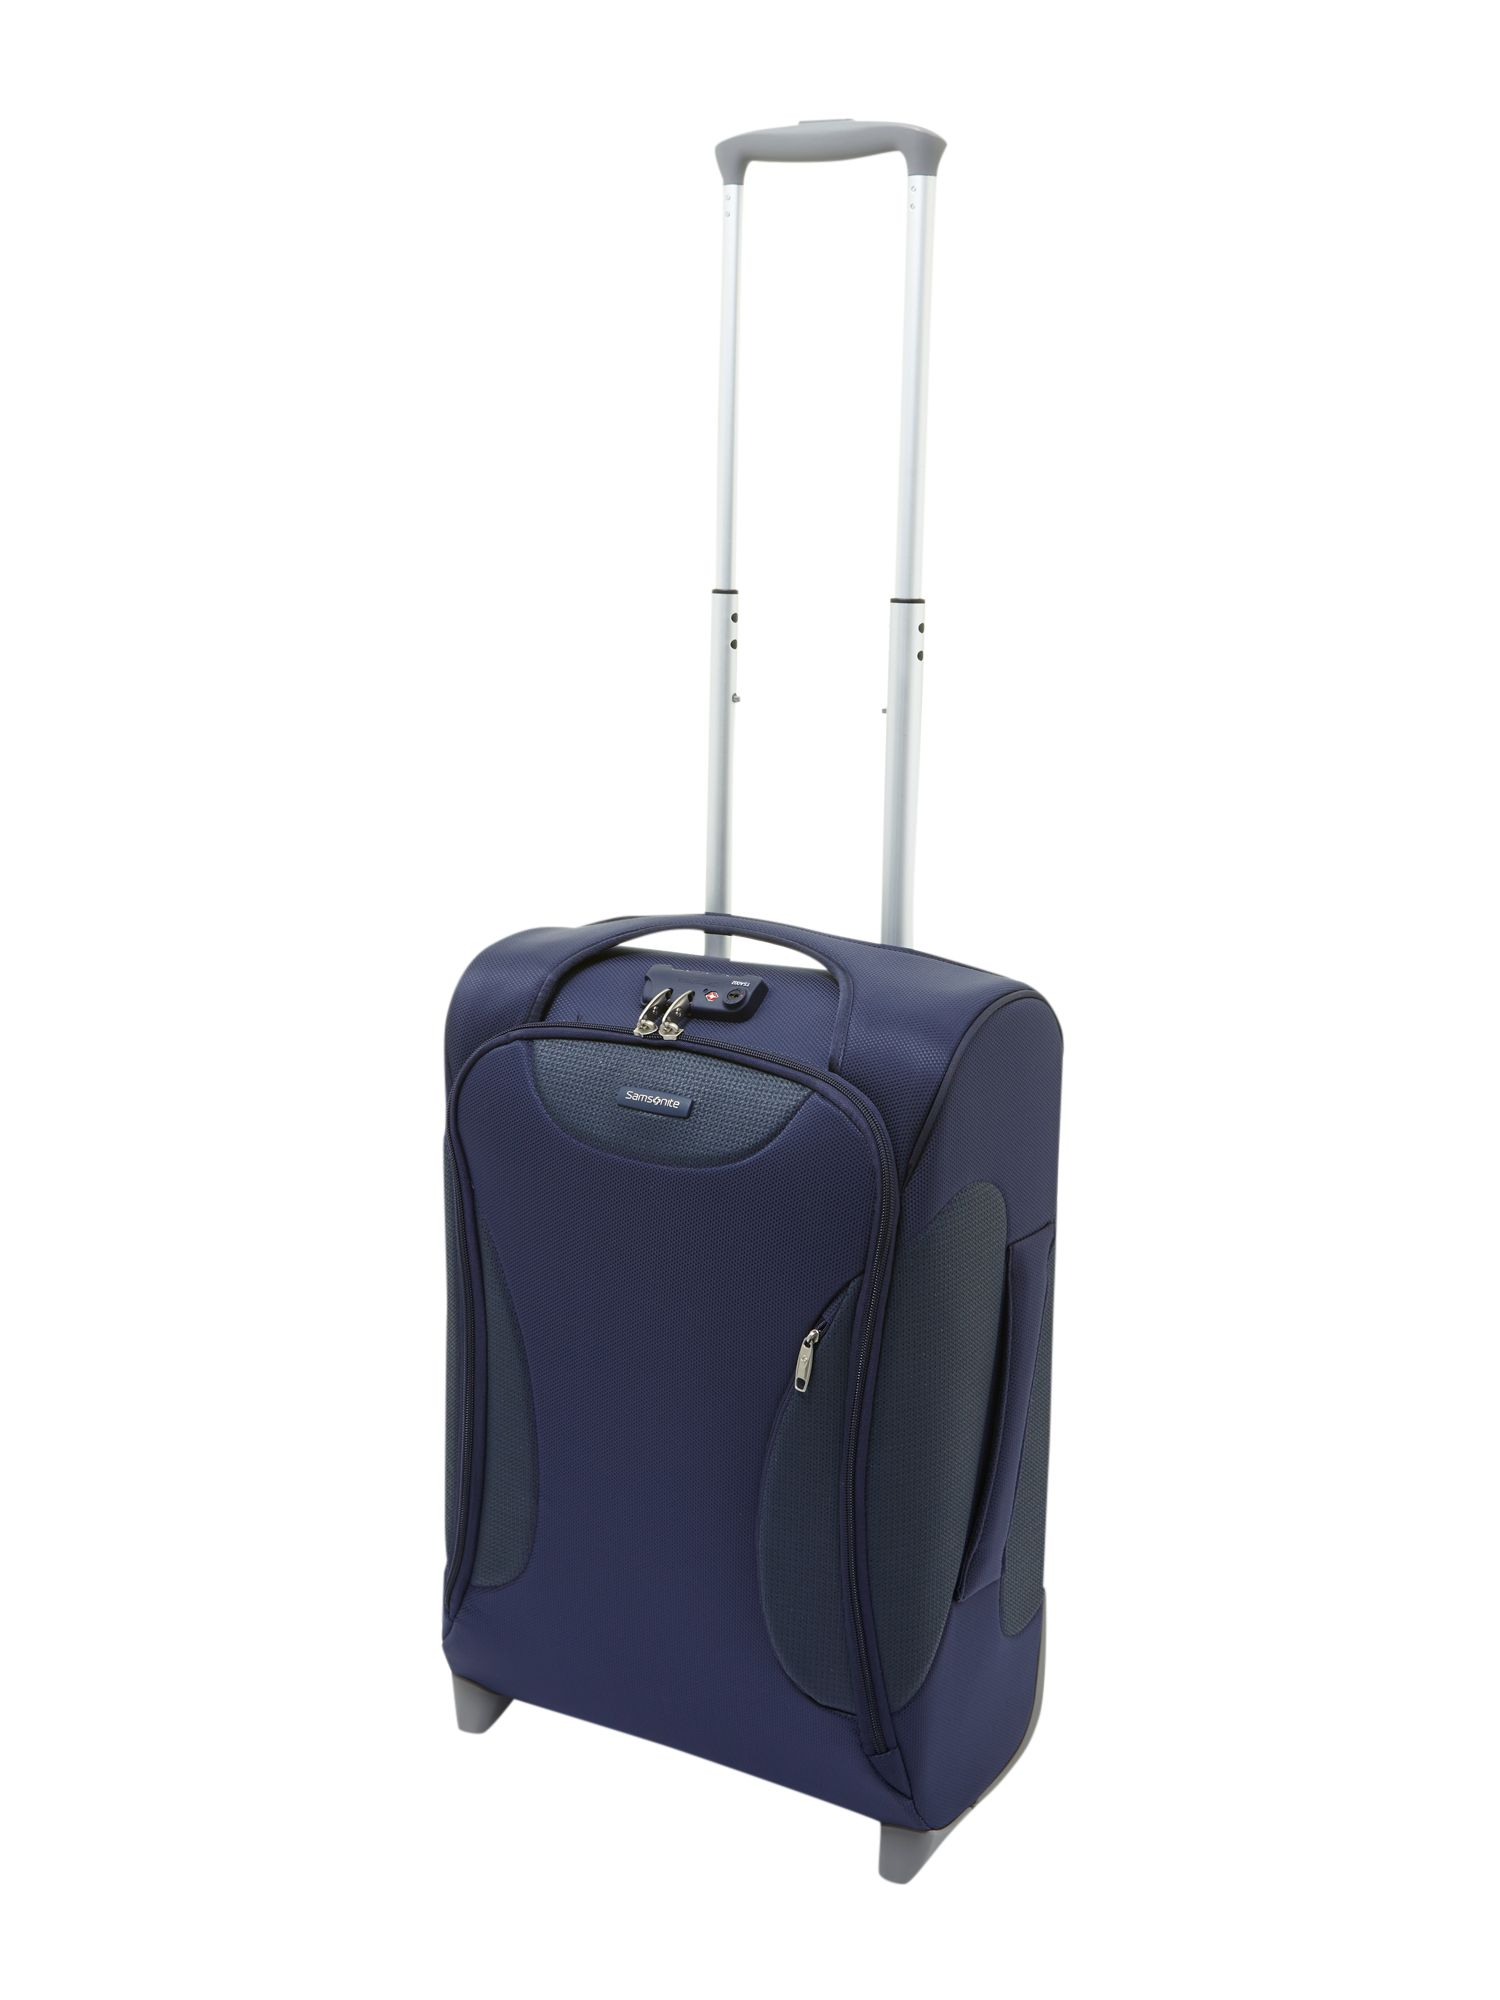 Panayio 55cm upright 2 wheeled case blue